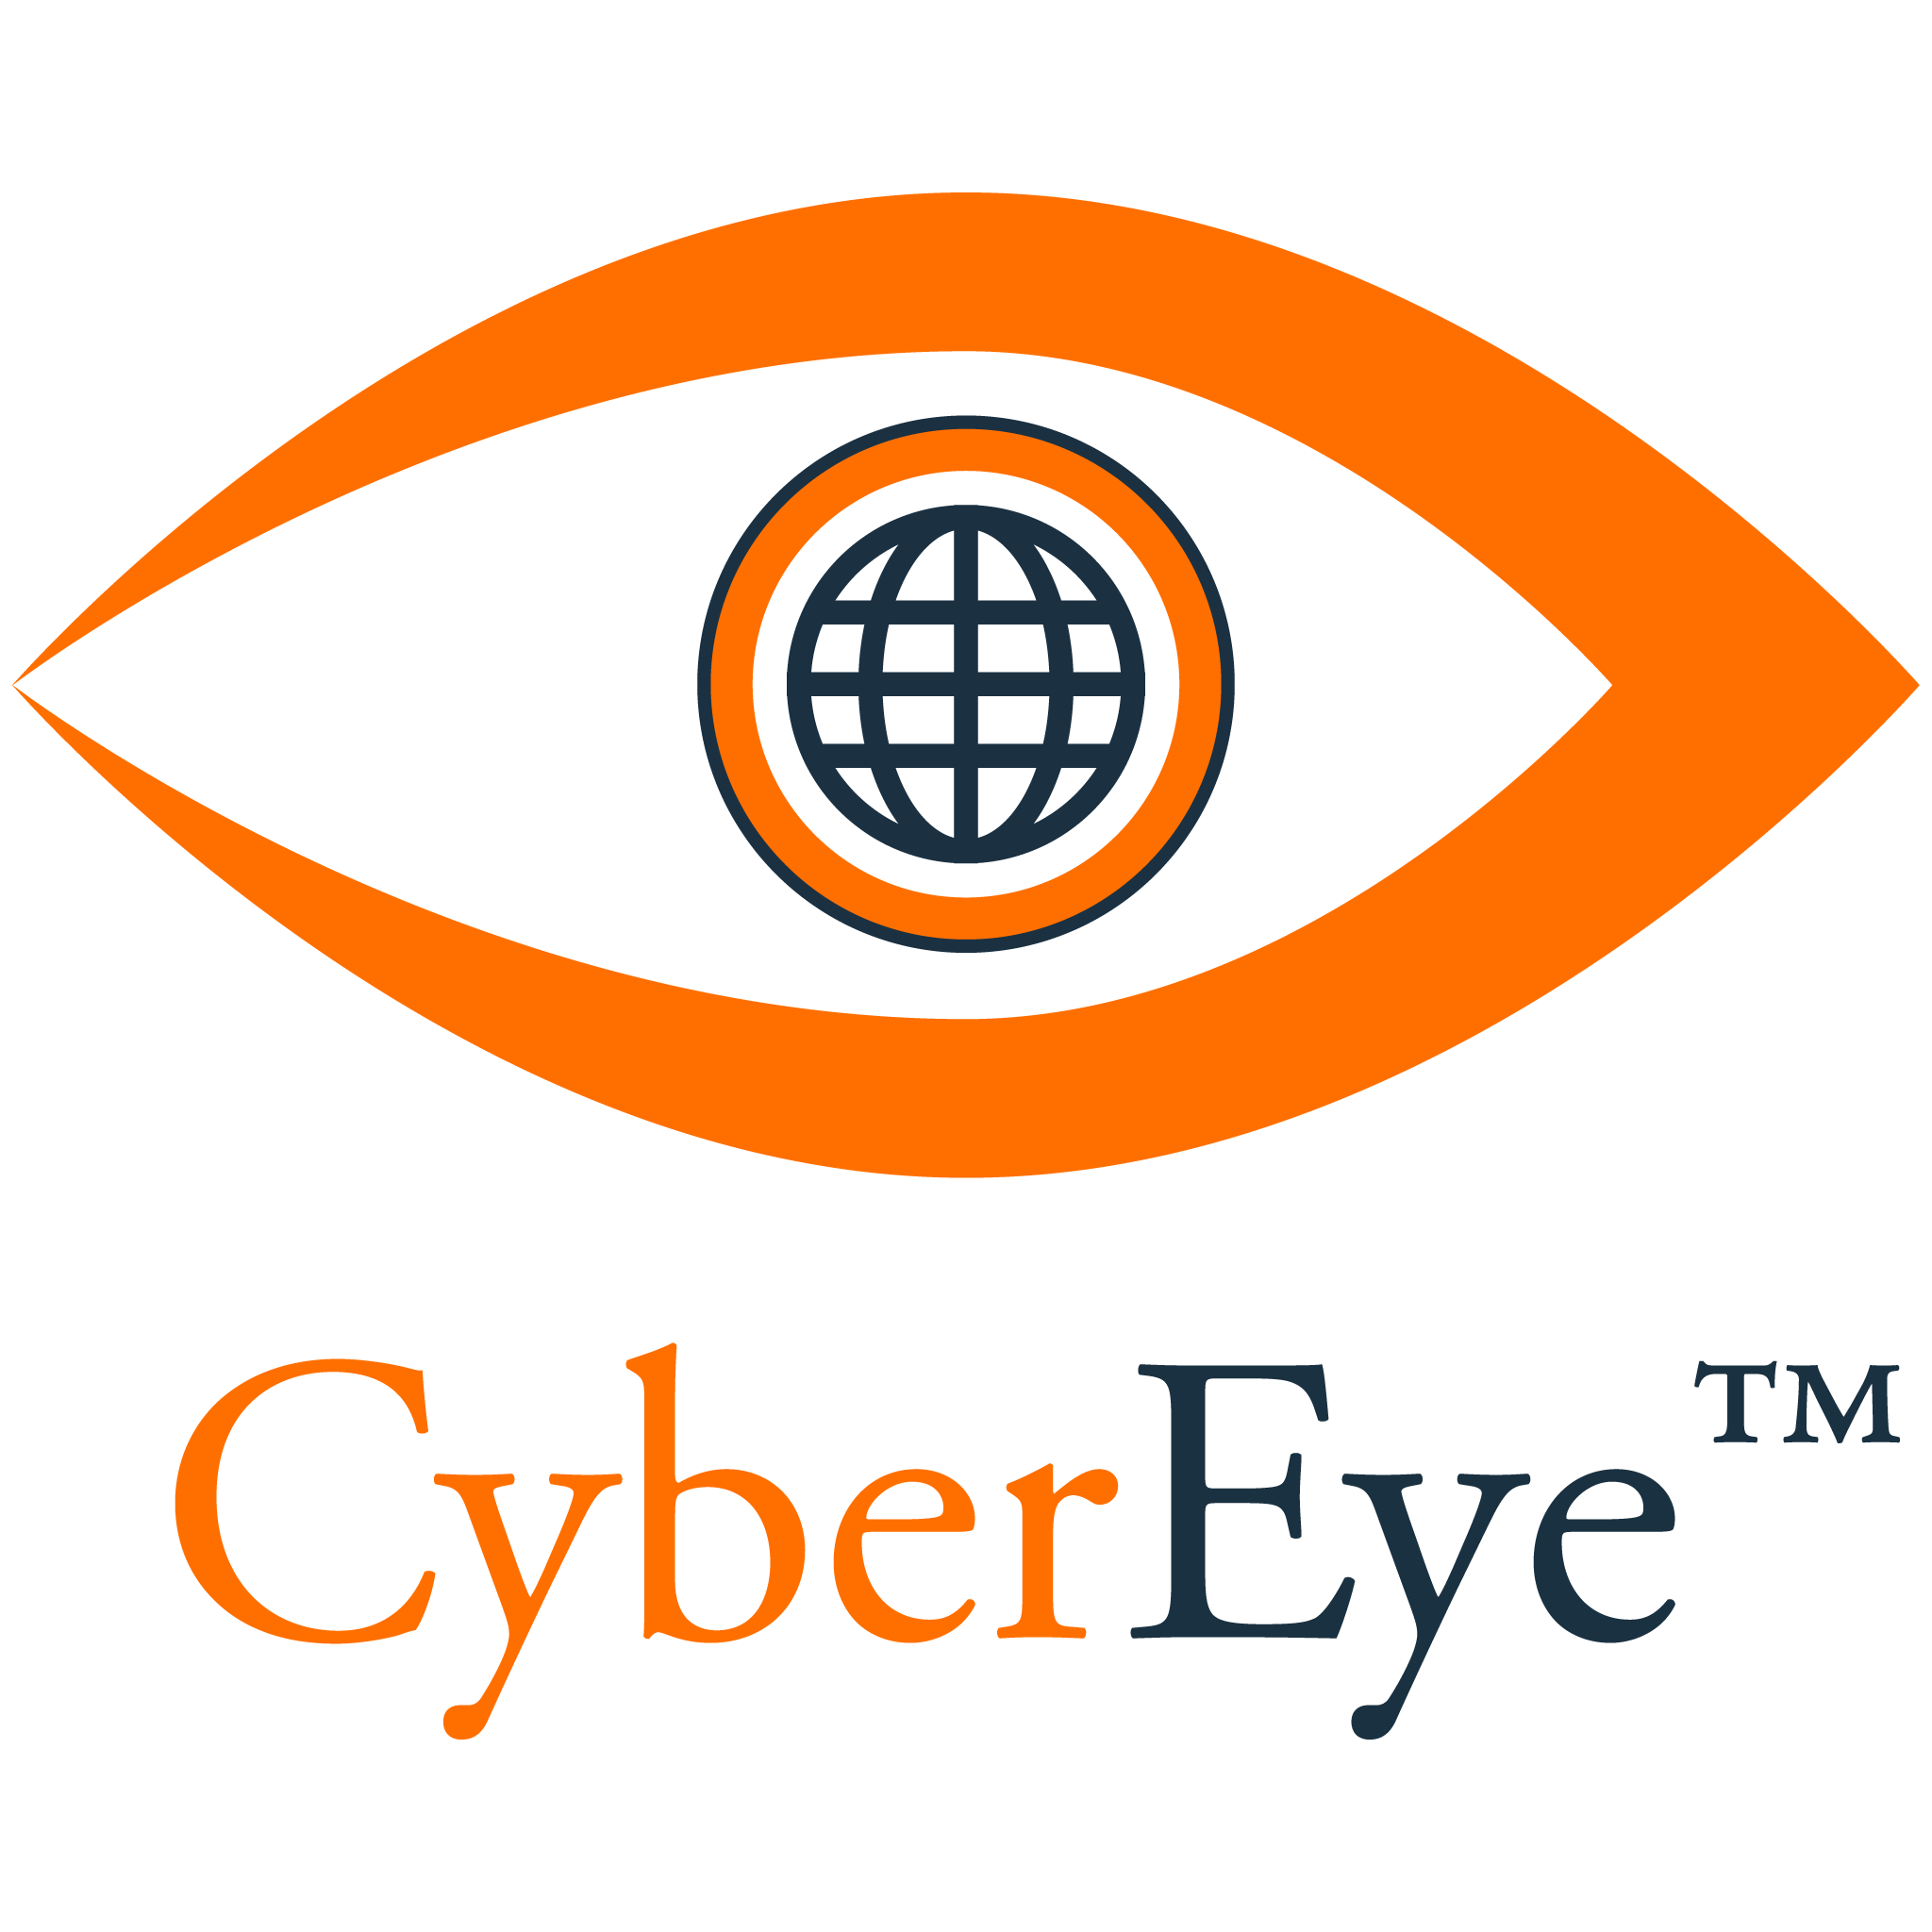 cyberEye-logo-cyber security